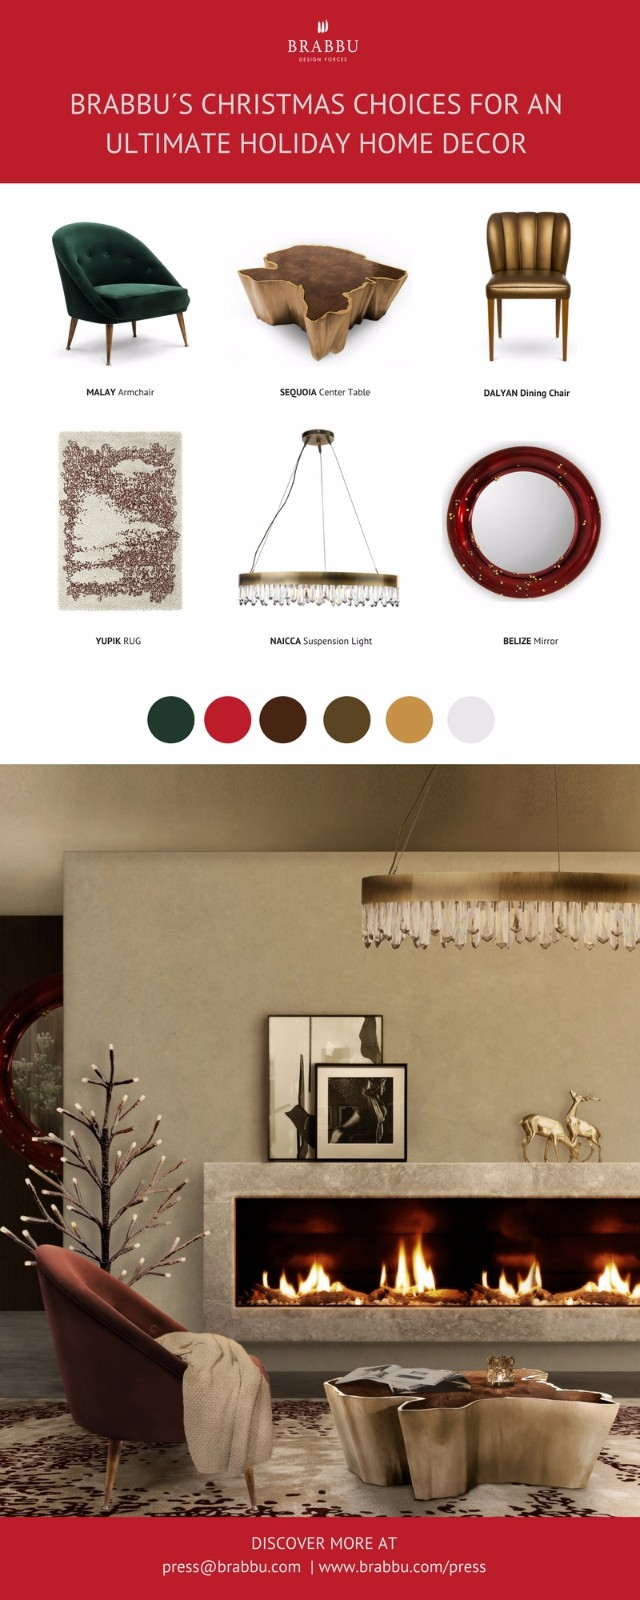 BRABBU´s Christmas choices for an ultimate Holiday Home Decor holiday home decorBRABBU´s Christmas choices for an ultimate Holiday Home Decorimgpsh fullsize 9